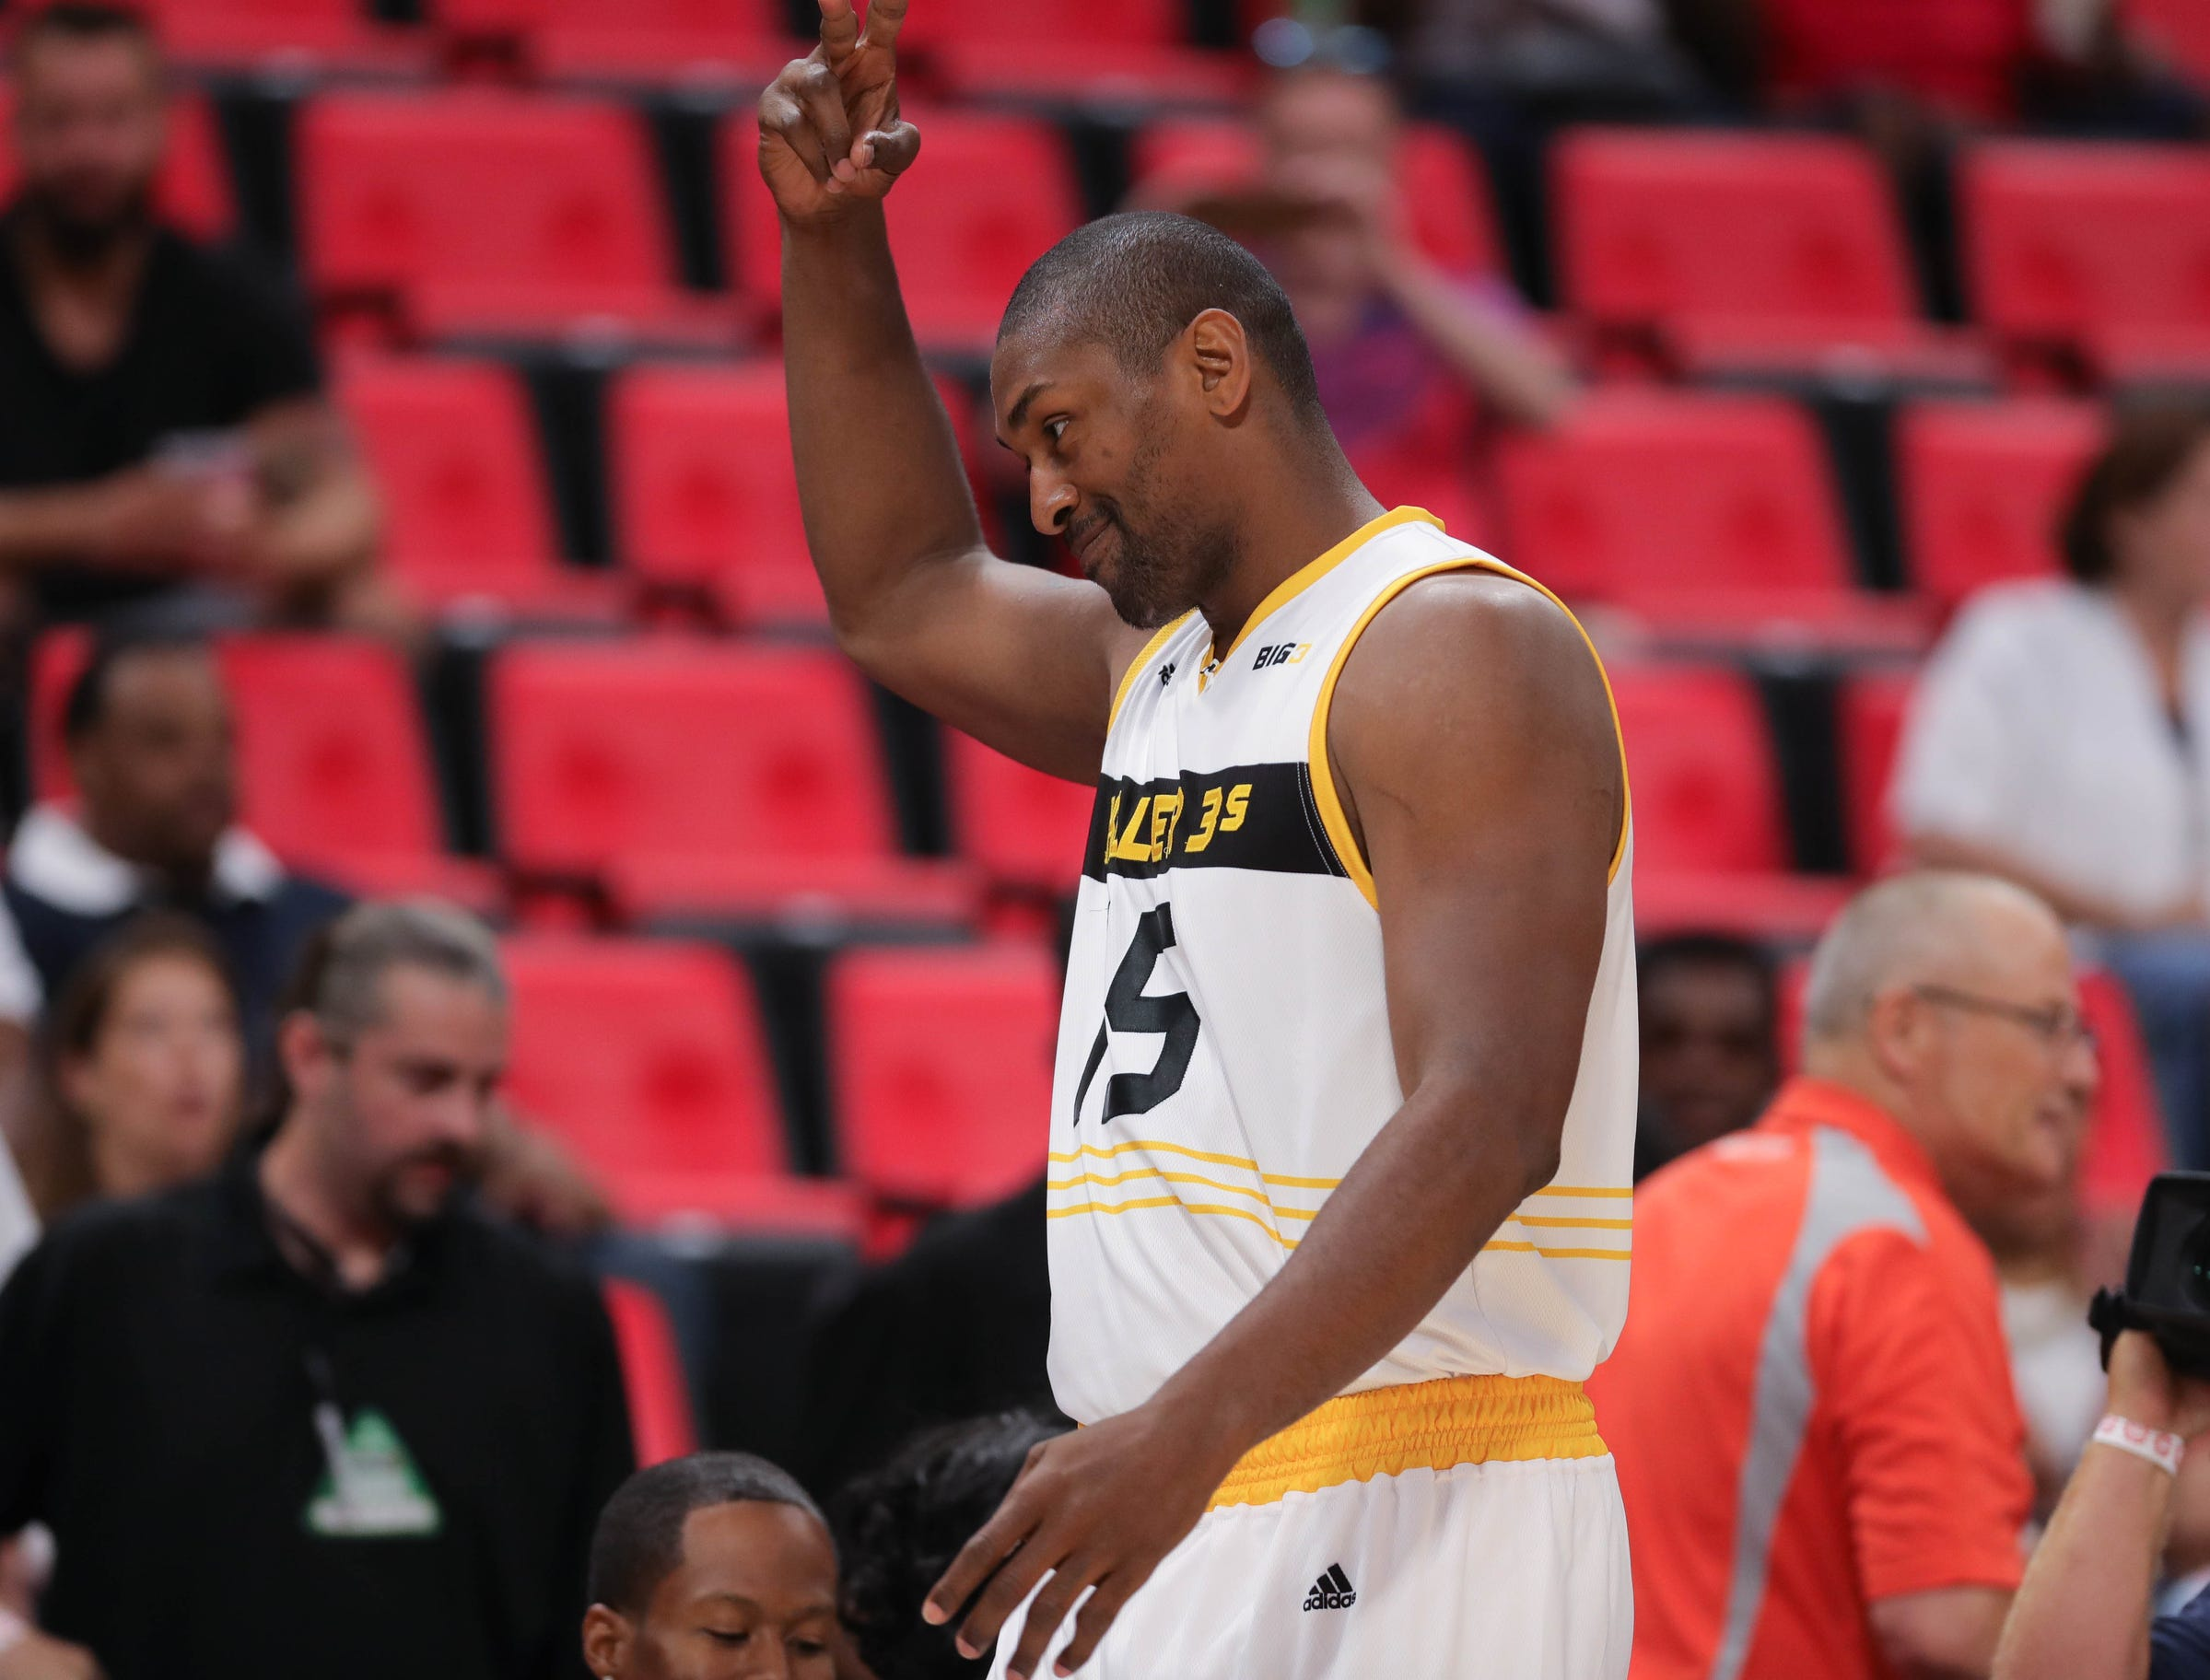 The Killer 3s Metta World Peace is ejected during the first minute of Big 3 action against Trilogy on Friday, July 13, 2018 at Little Caesars Arena in Detroit.